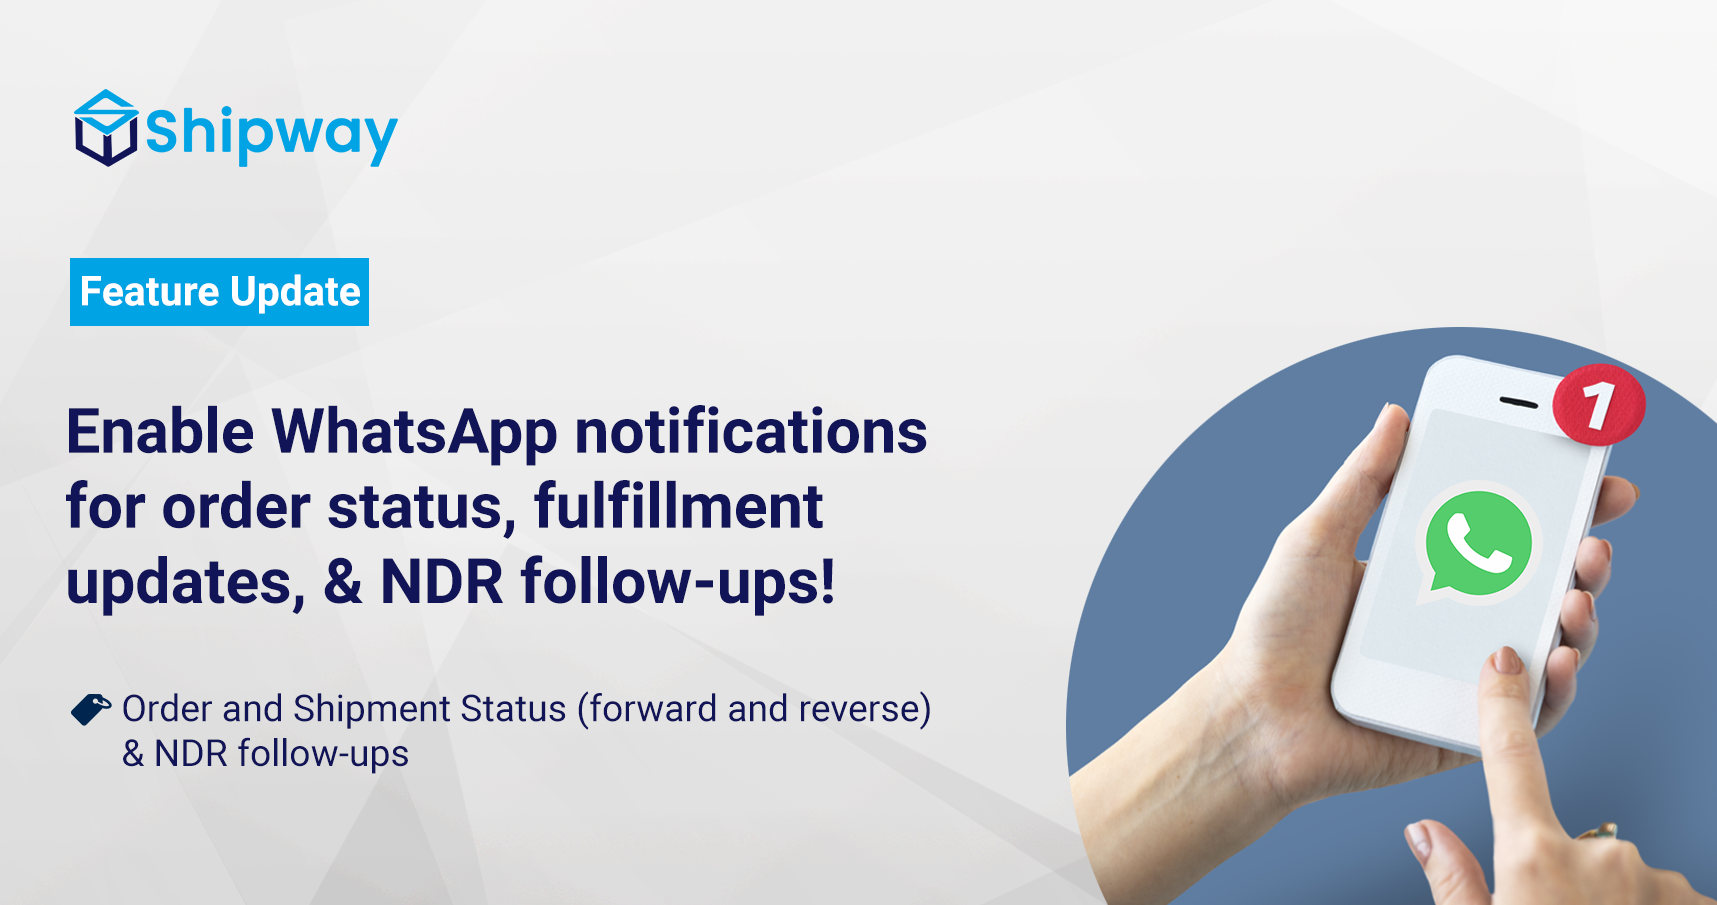 Enable WhatsApp notifications for order status, fulfillment updates, & NDR follow-ups!